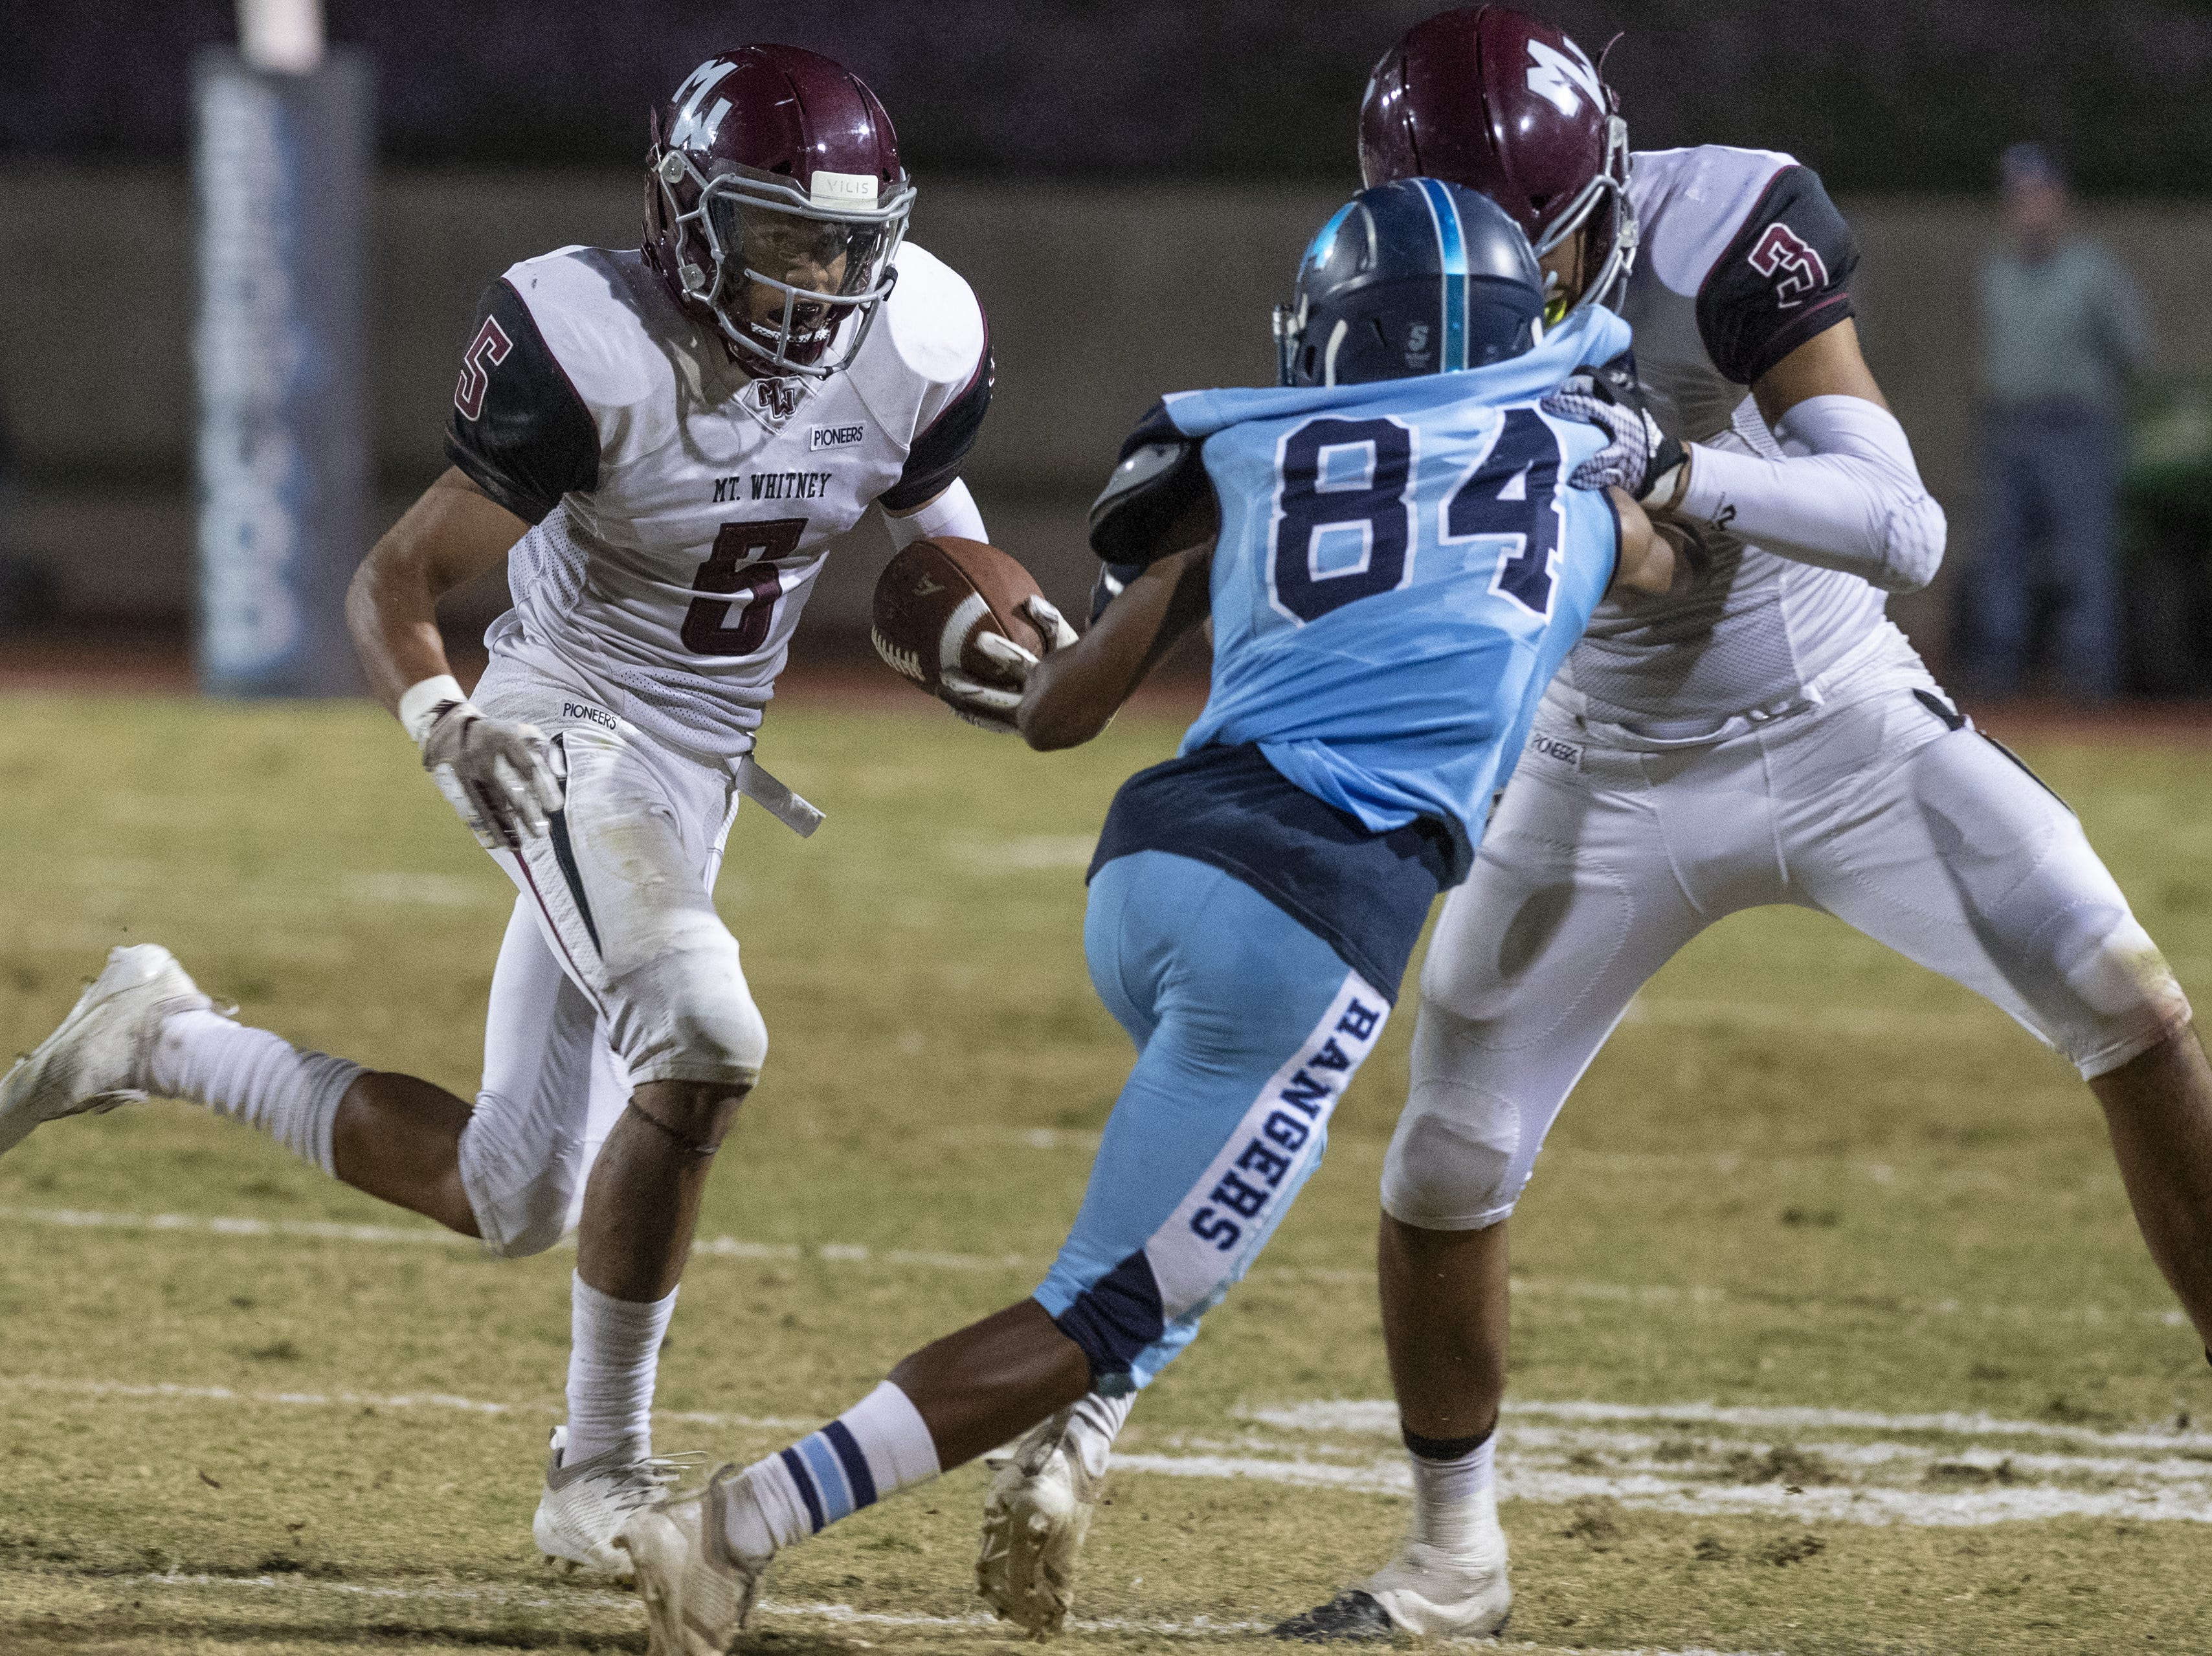 Double impact: Two-way starters shining for Mt. Whitney